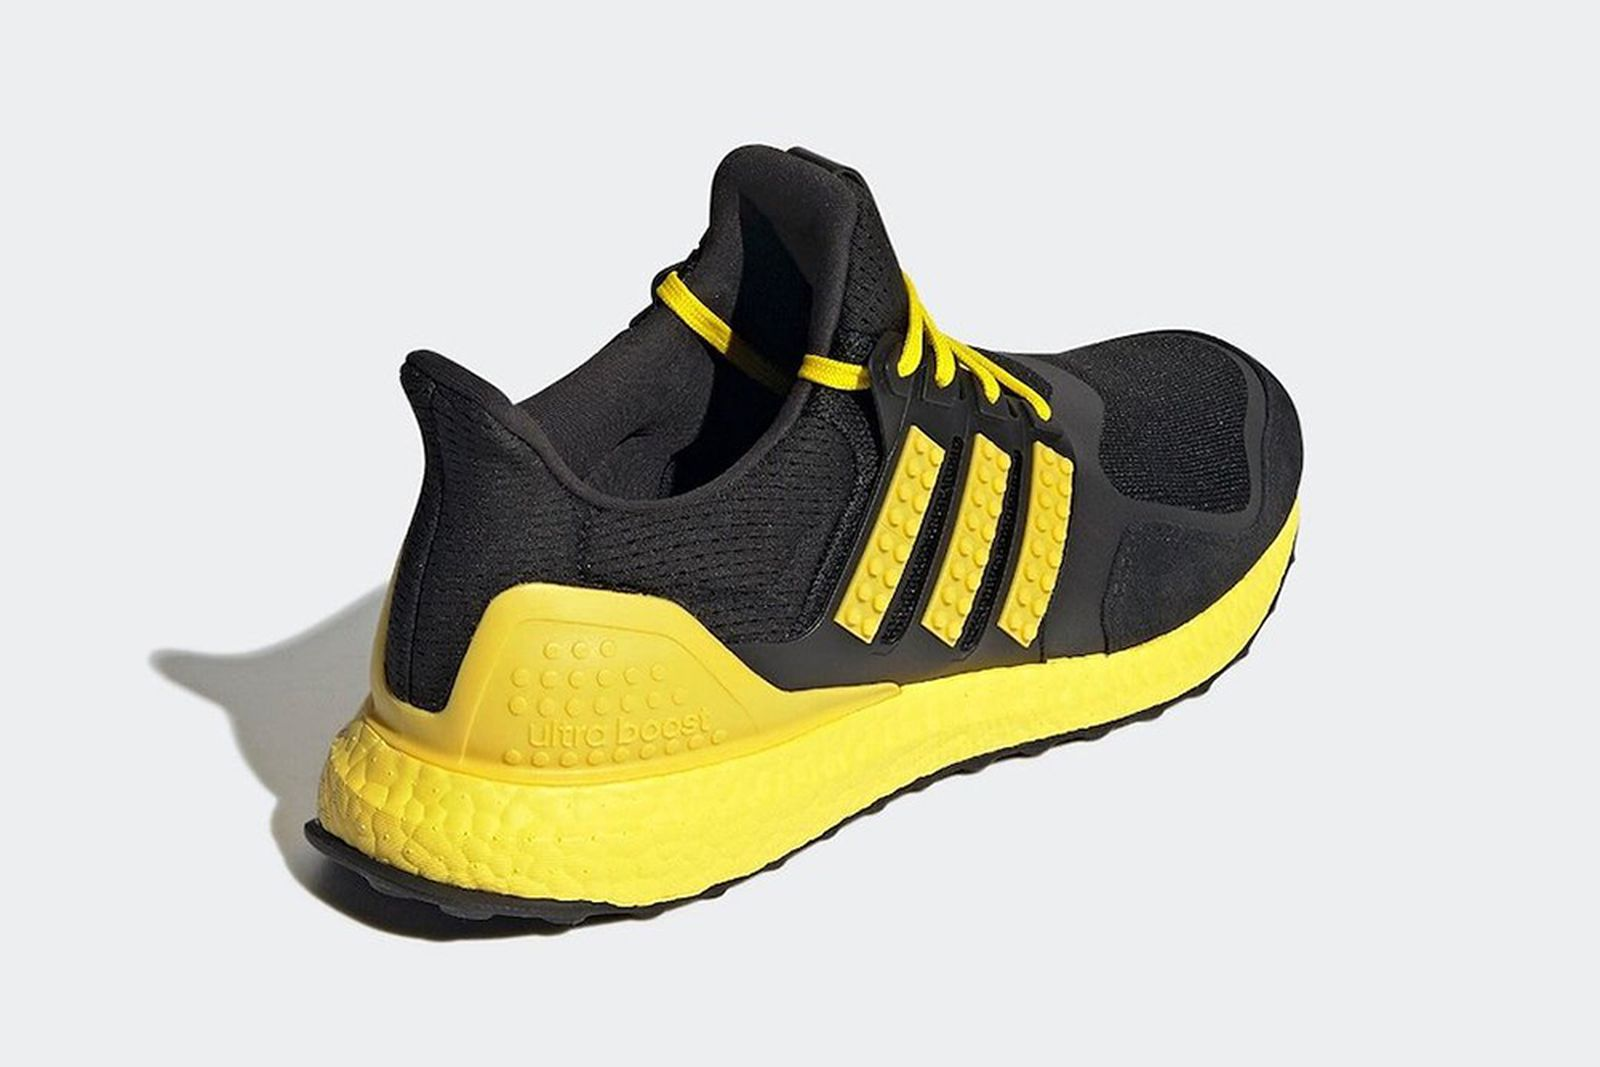 lego-adidas-ultraboost-color-pack-release-date-price-03